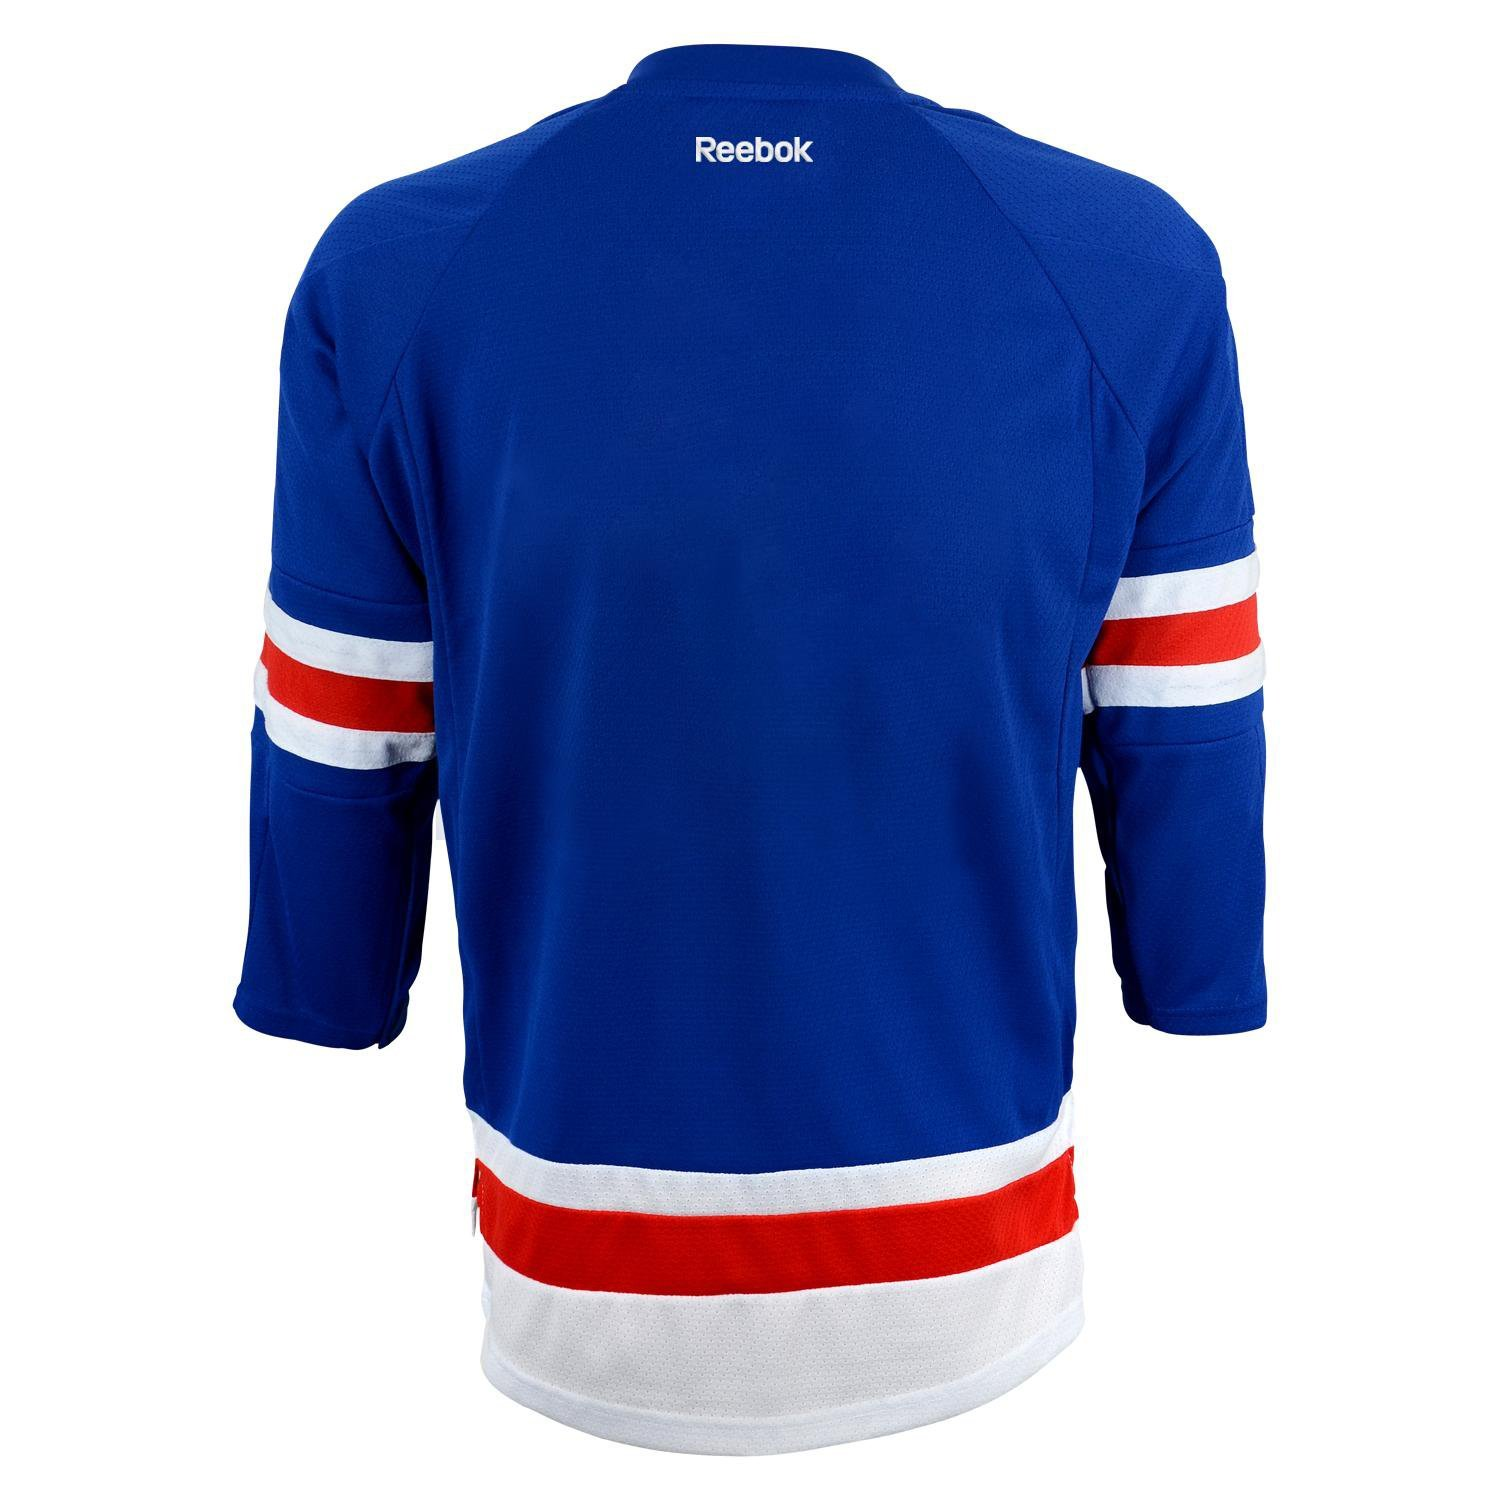 16893d091d6 Amazon.com : NHL Boys 4-7 Team Color Replica Jersey : Sports & Outdoors